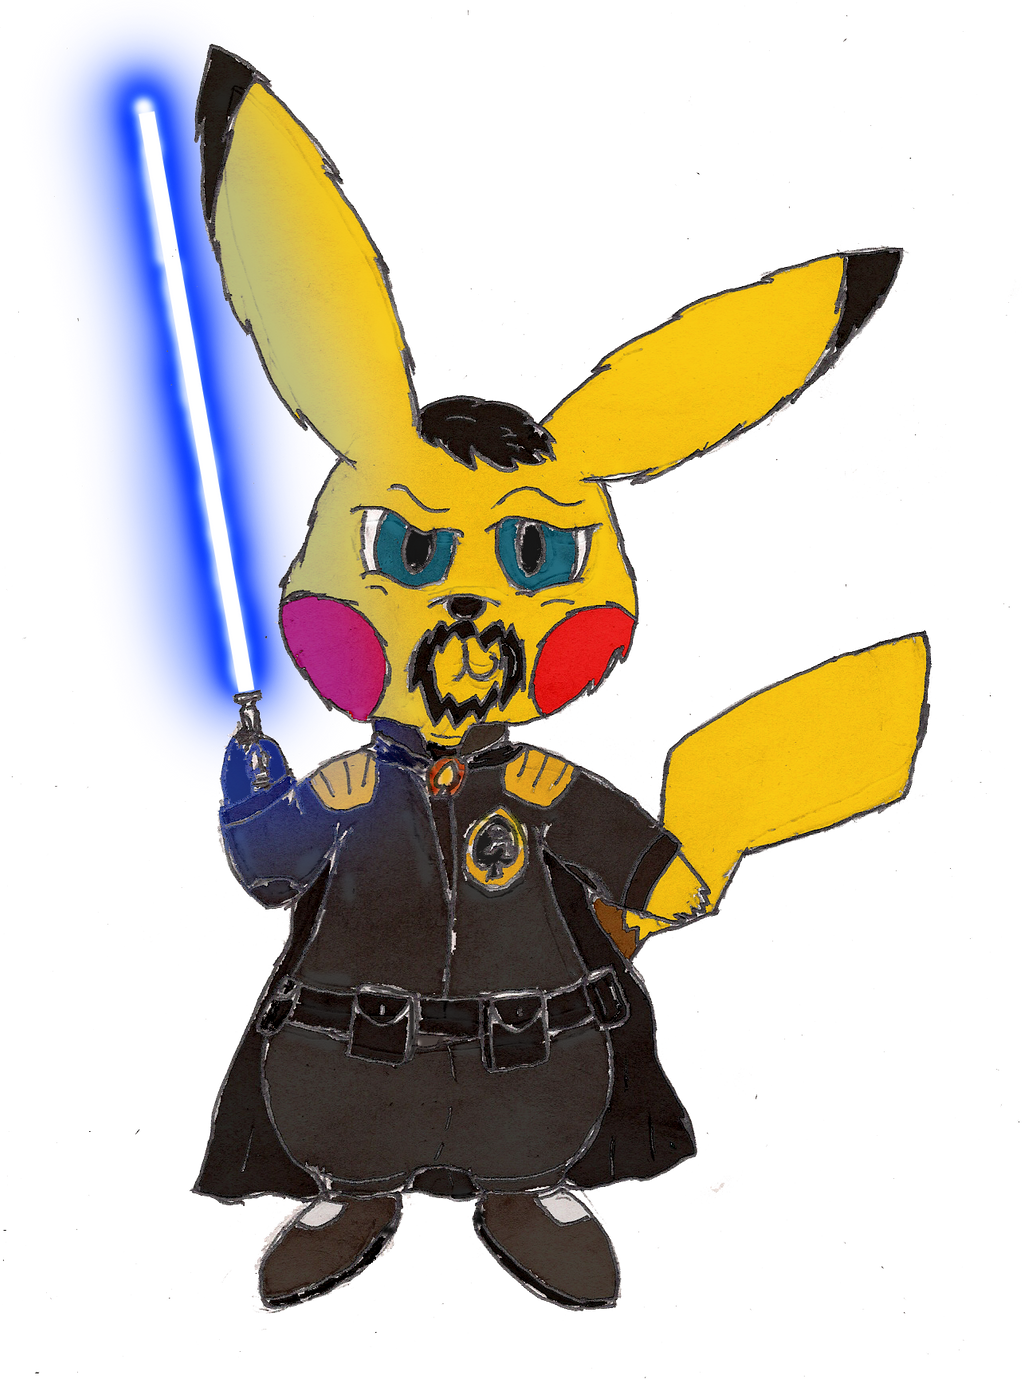 Star Warrior of the Knights of Spade